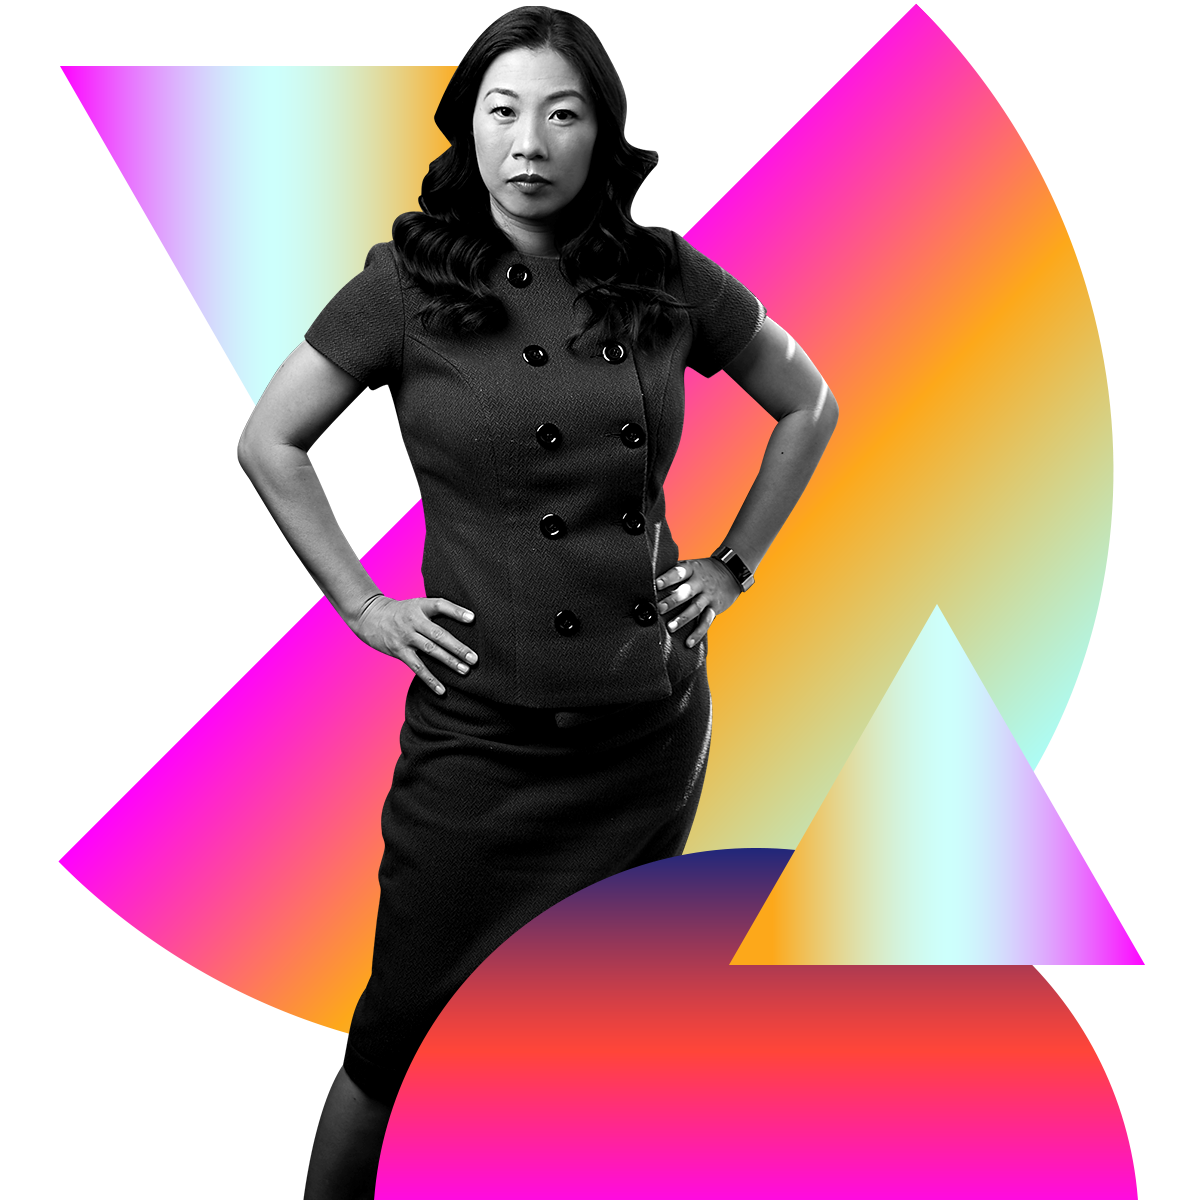 Photo illustration of Kristina Wong in black and white surrounded by colored gradients